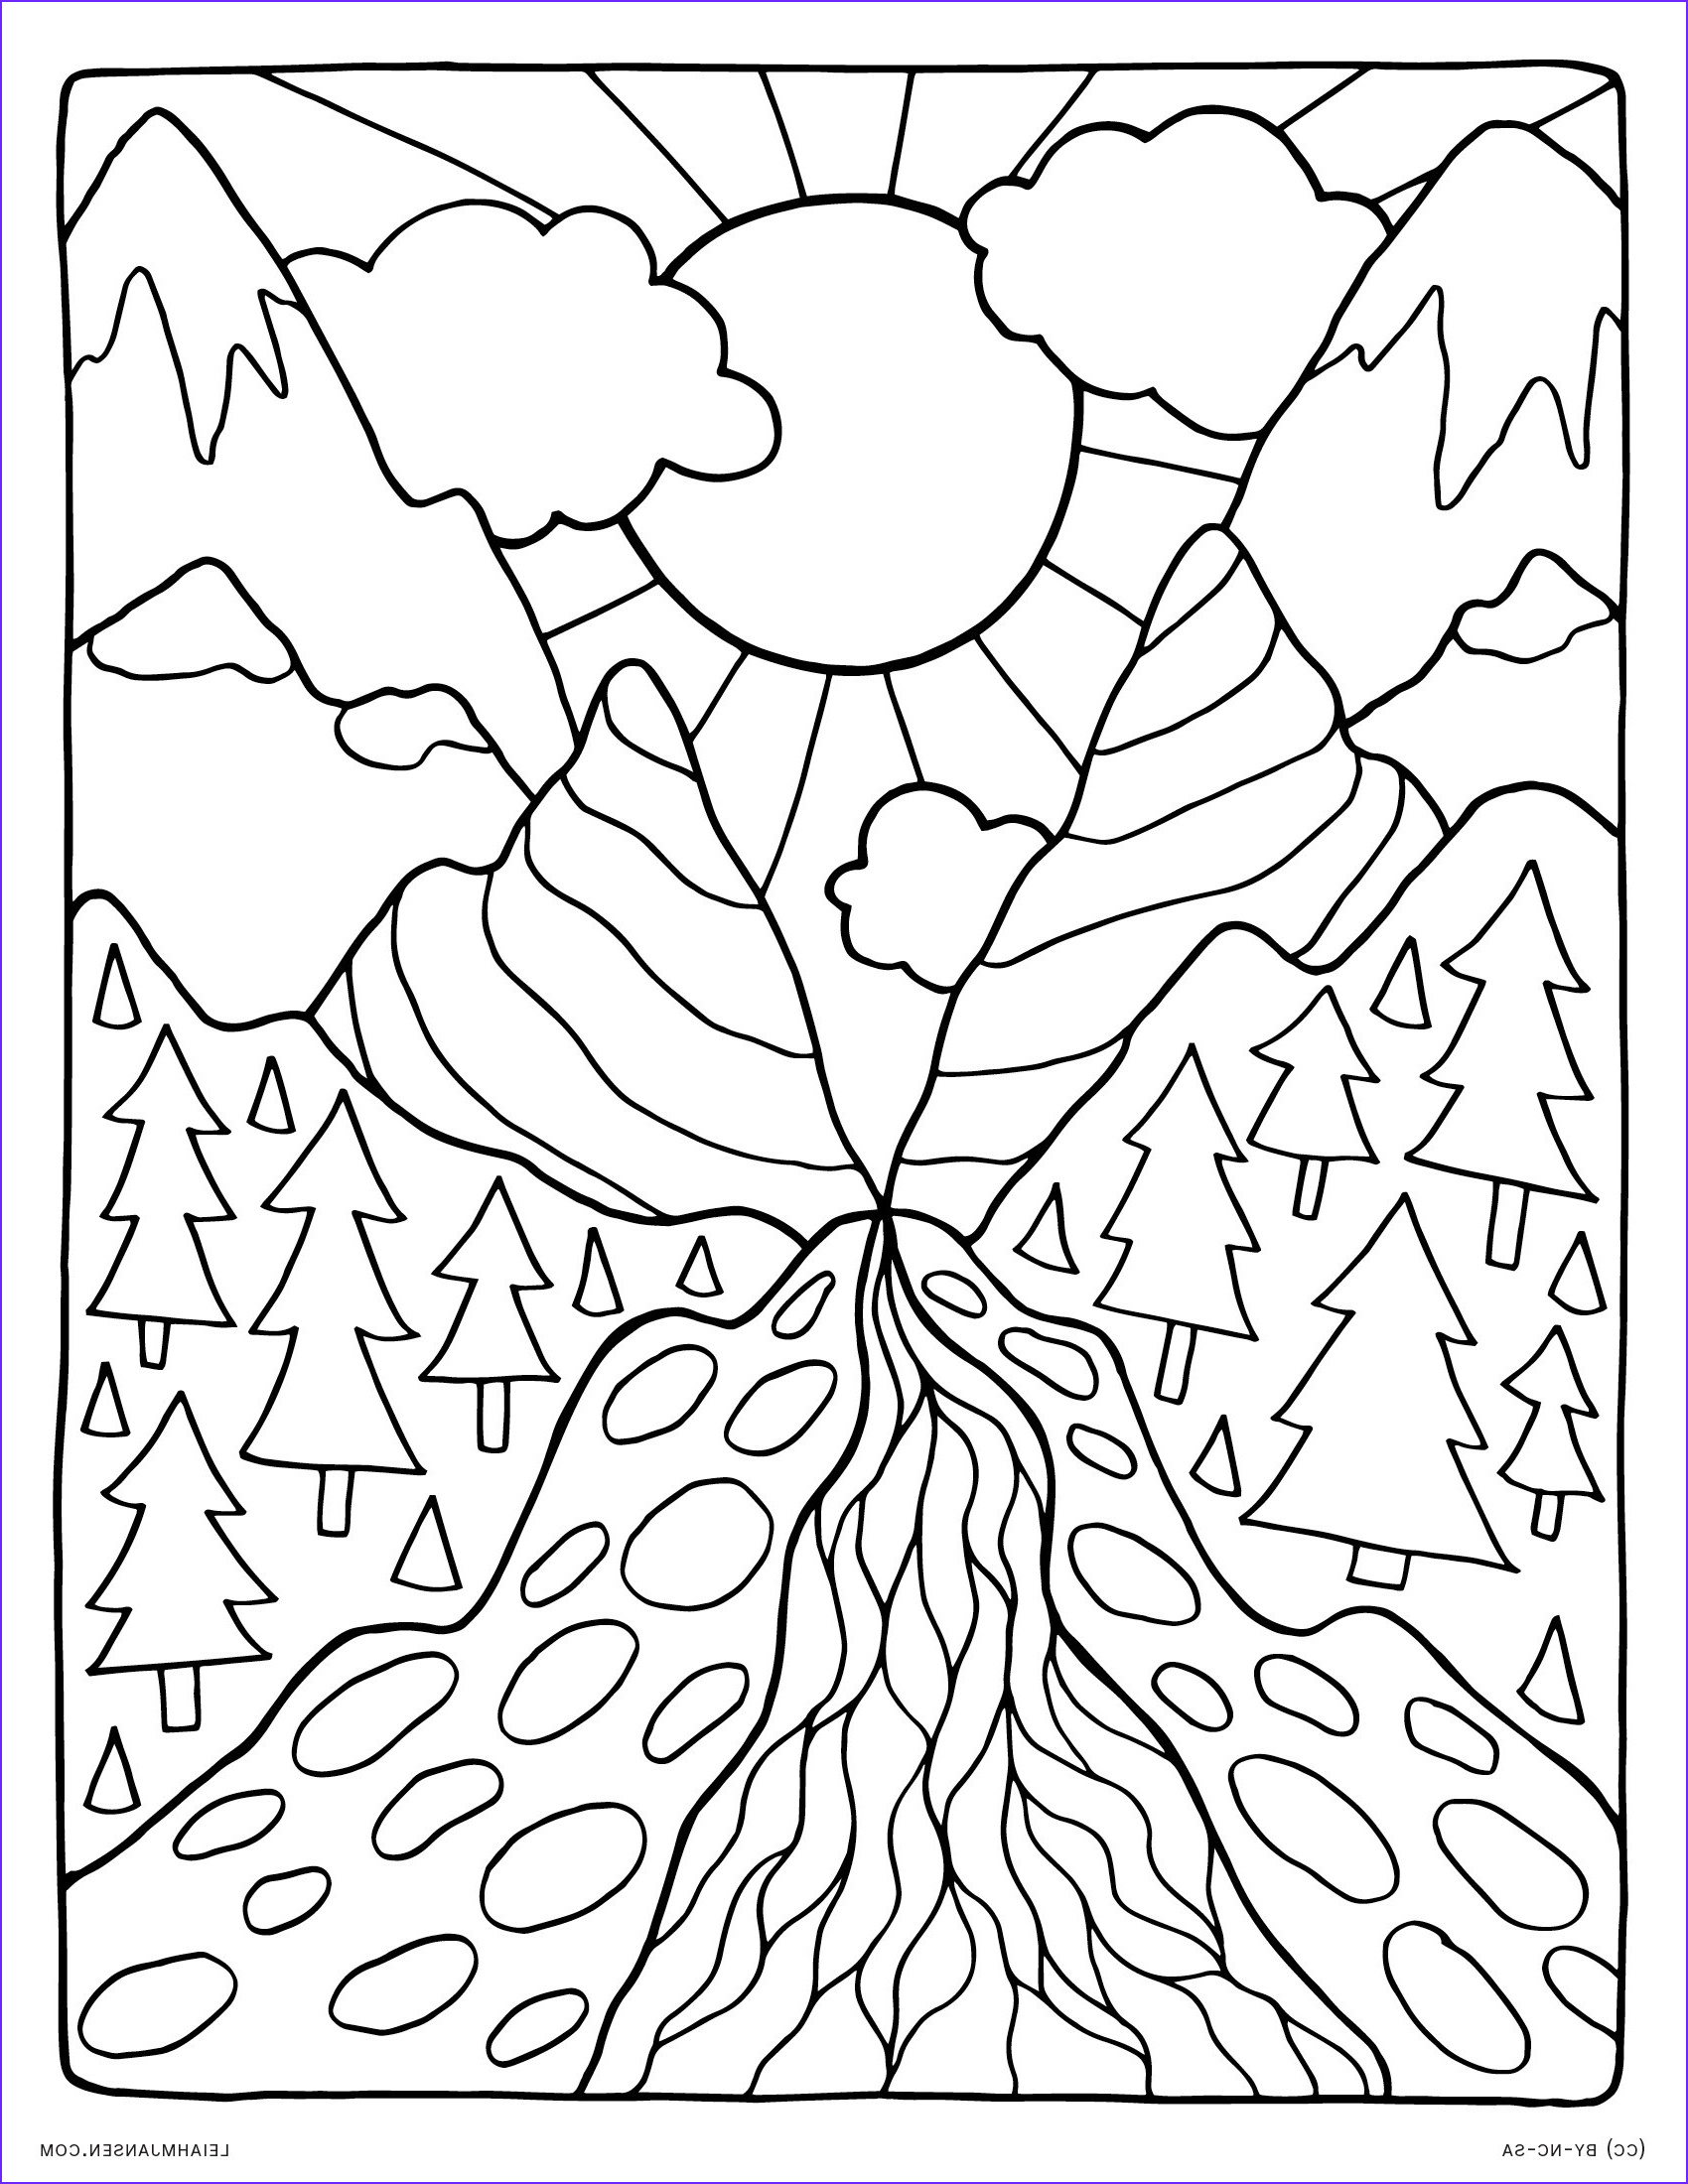 Nature Coloring Pages for Adults Cool Photography Detailed Landscape Coloring Pages for Adults at